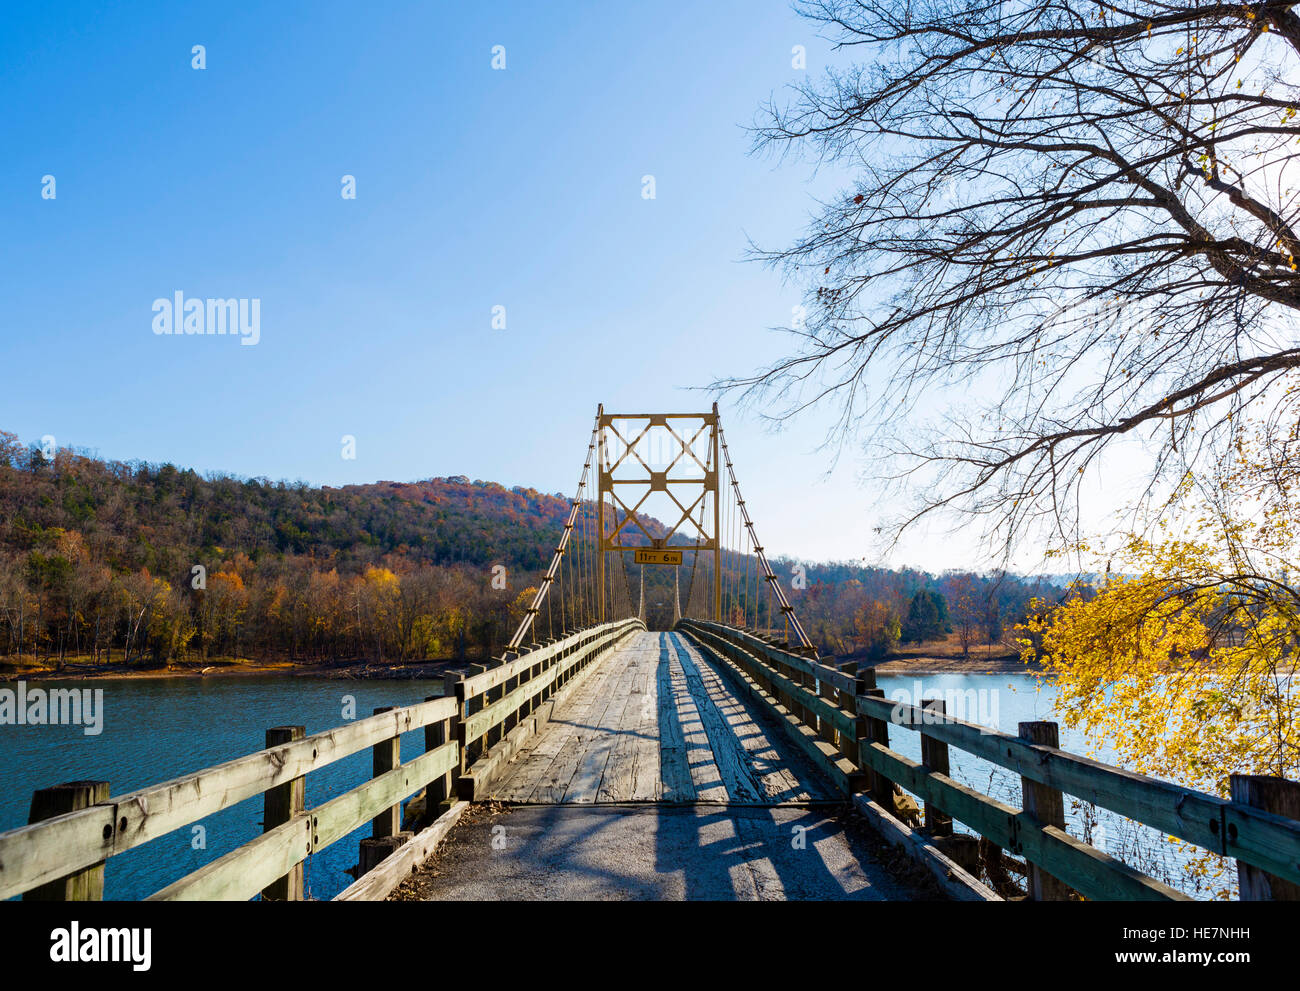 Historic Beaver Bridge over the White River, Table Rock Lake, Beaver, Ozark Mountains, Arkansas, USA - Stock Image